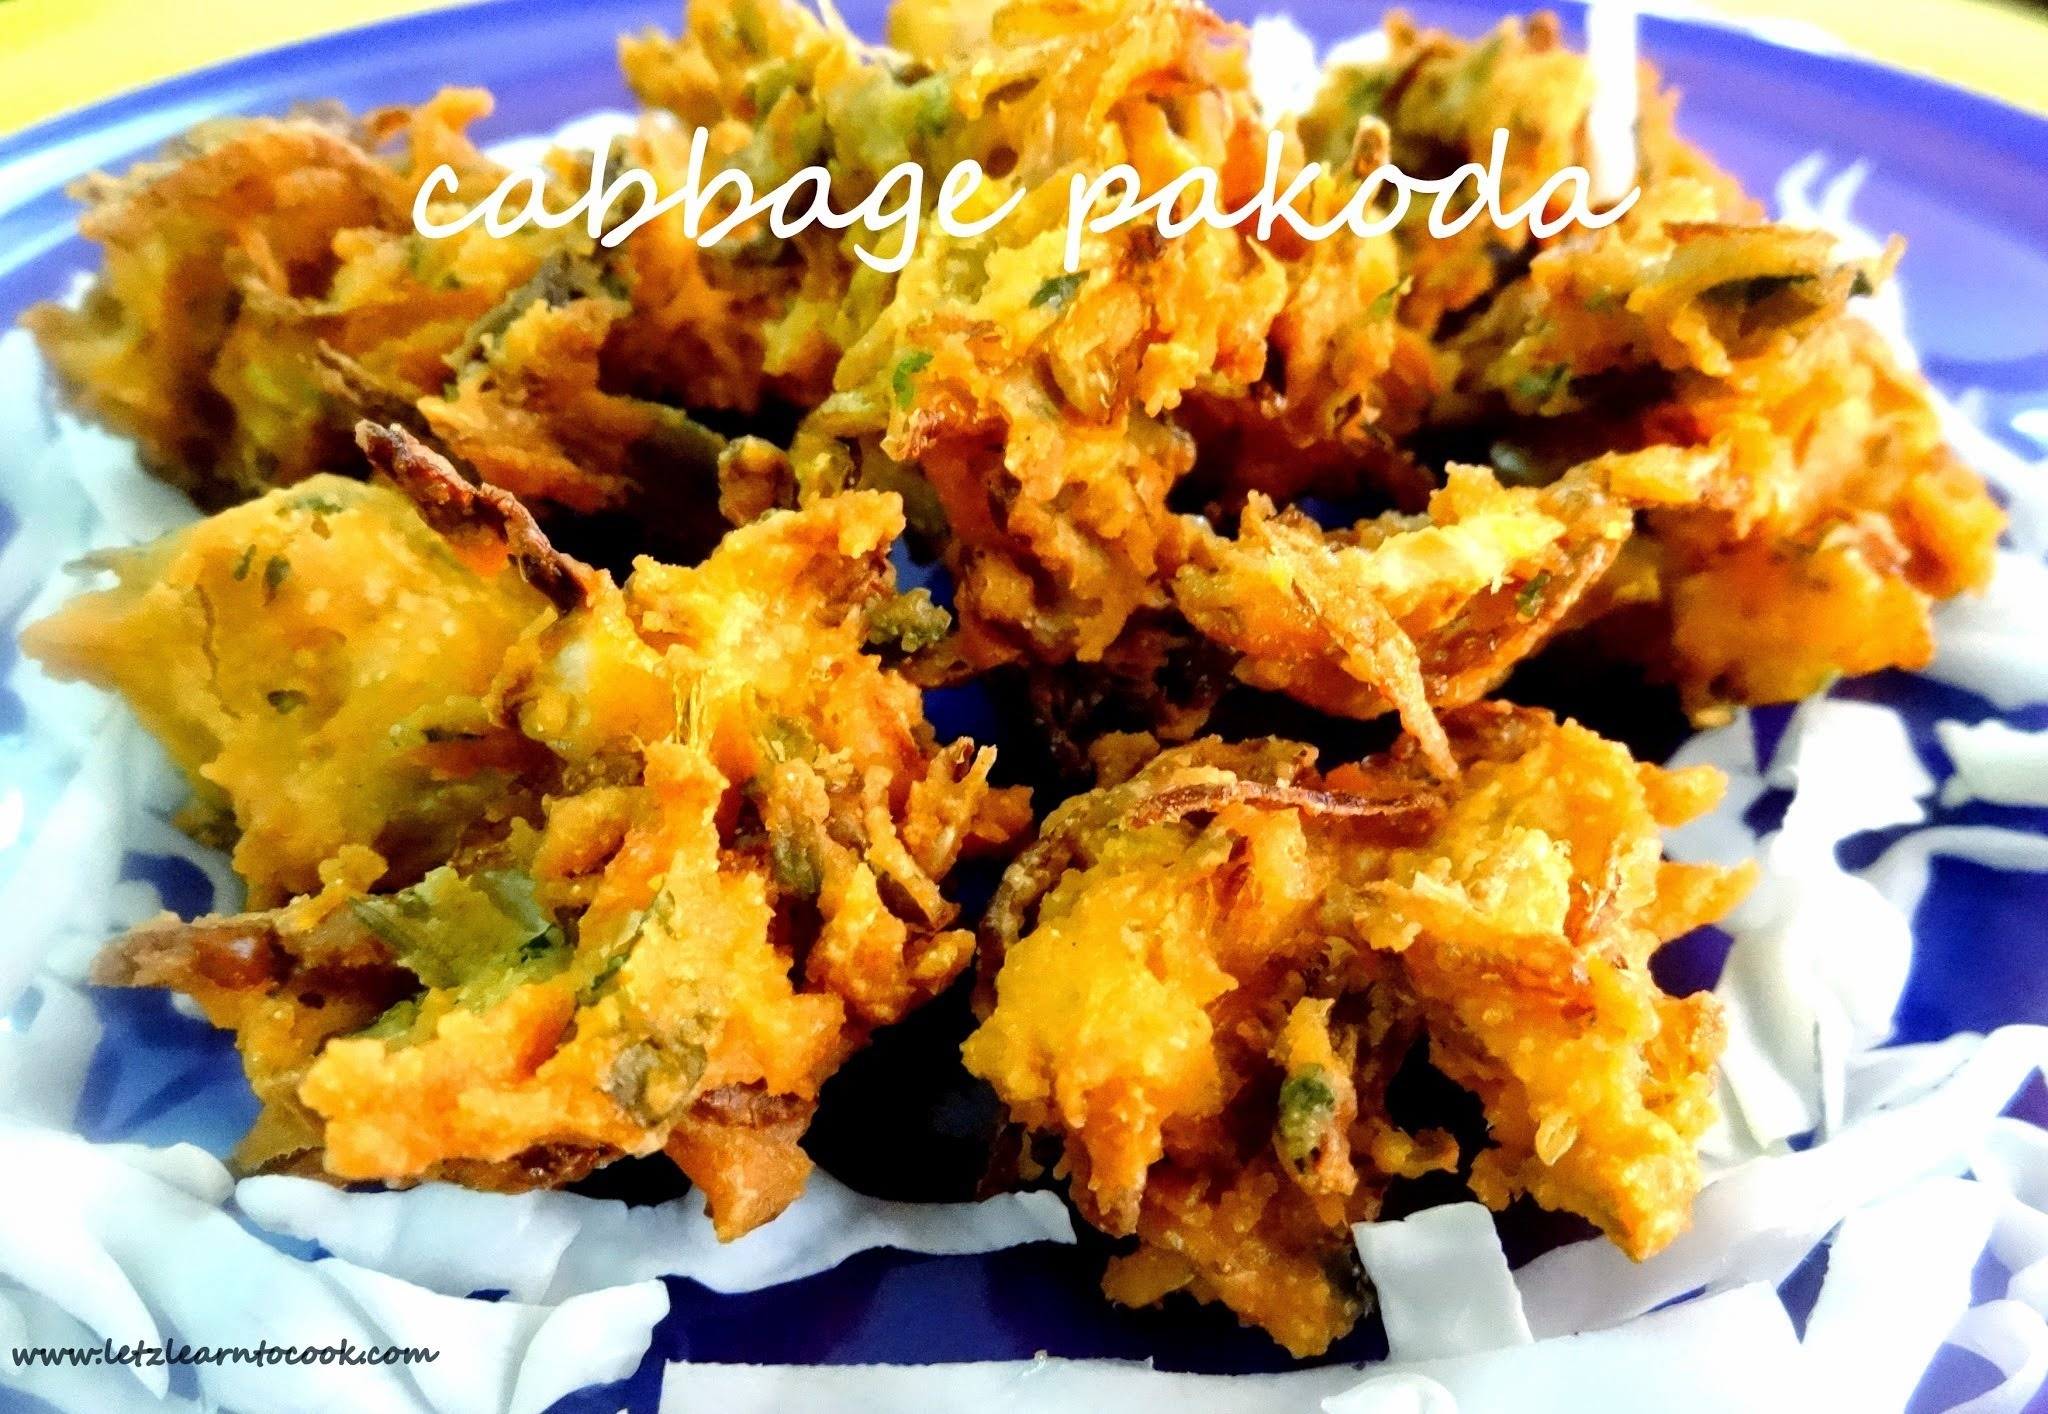 Cabbage pakoda/Cabbage Pakora